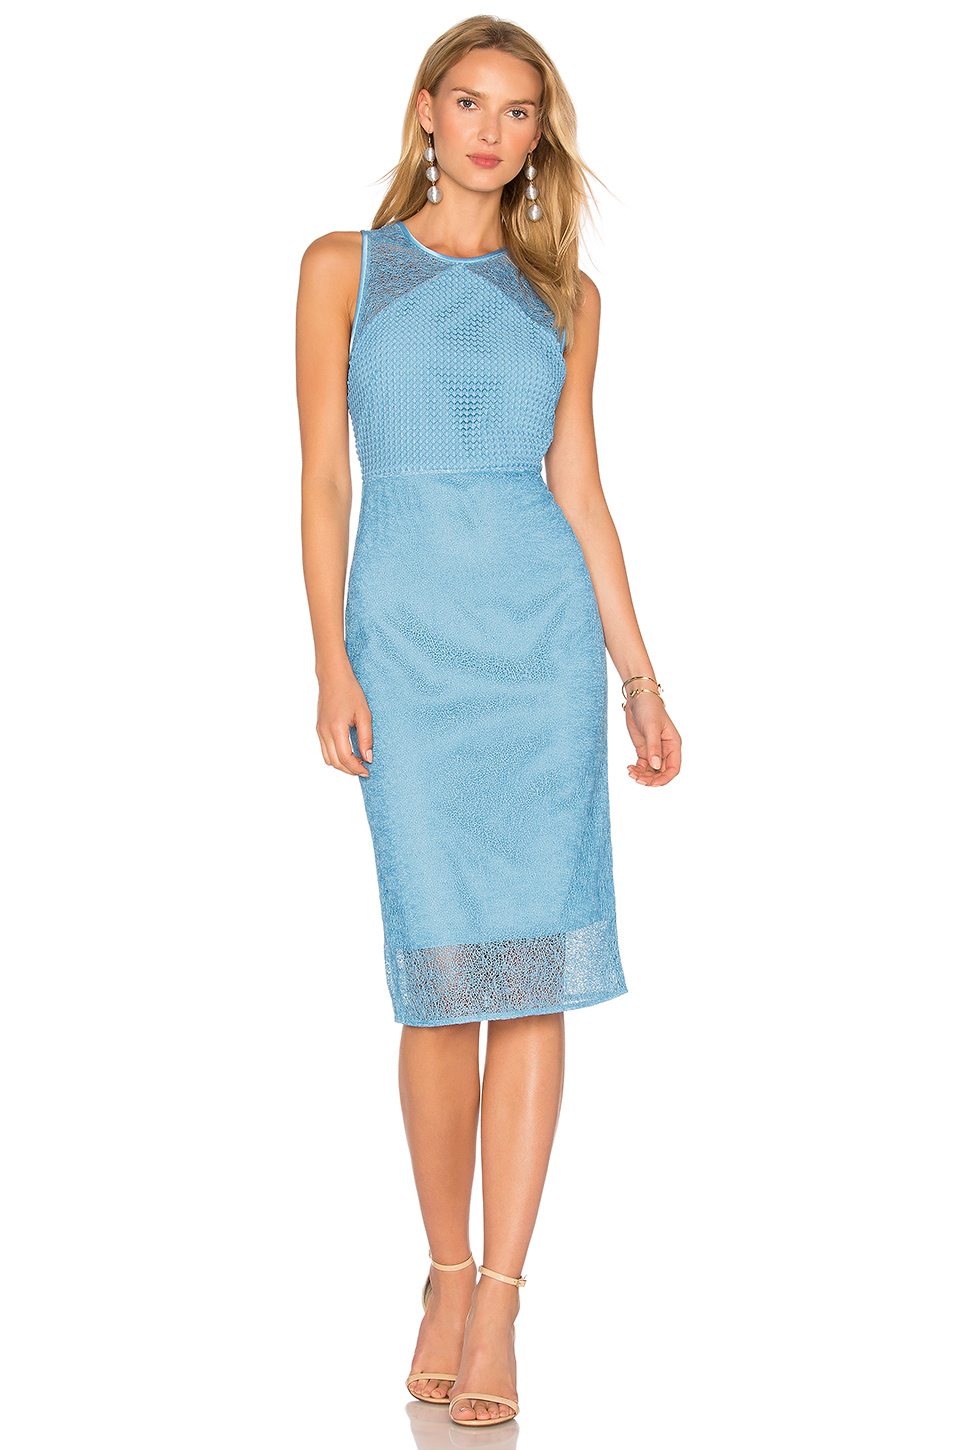 Diane Von Furstenberg Sleeveless Lace Dress In Blue